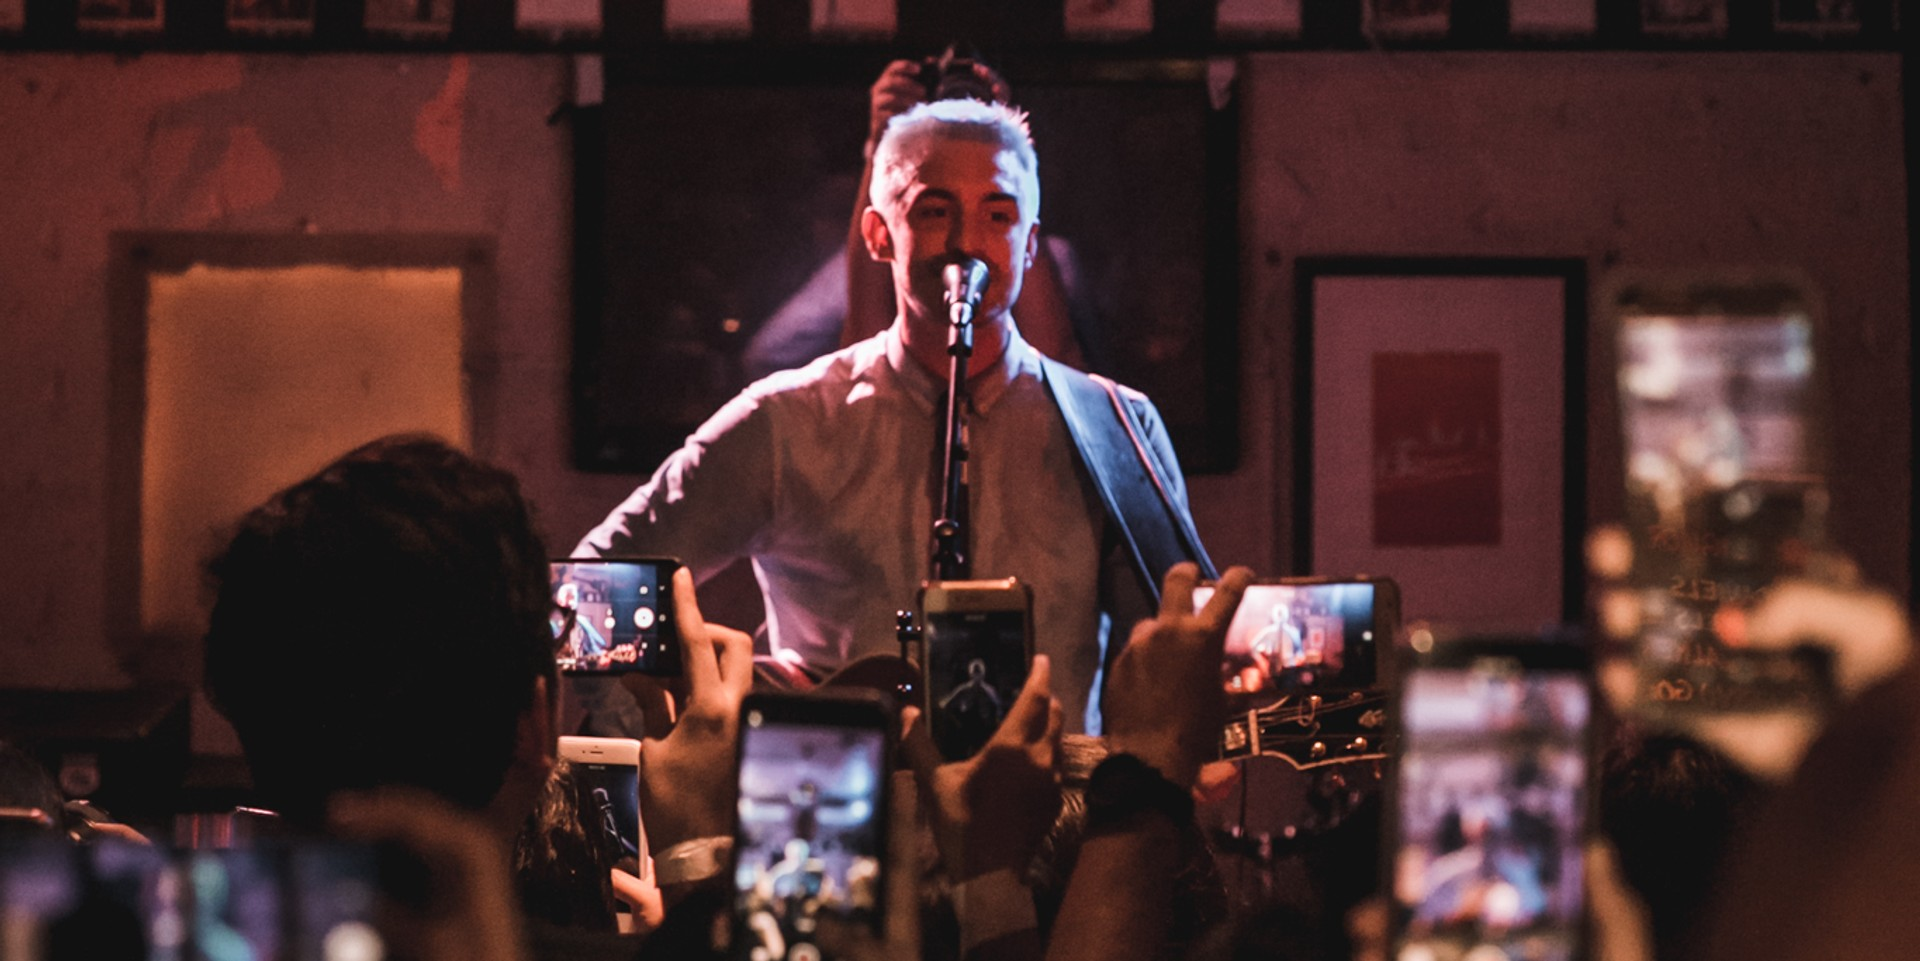 Kyle Patrick wowed Filipino audience at secret show in Quezon City